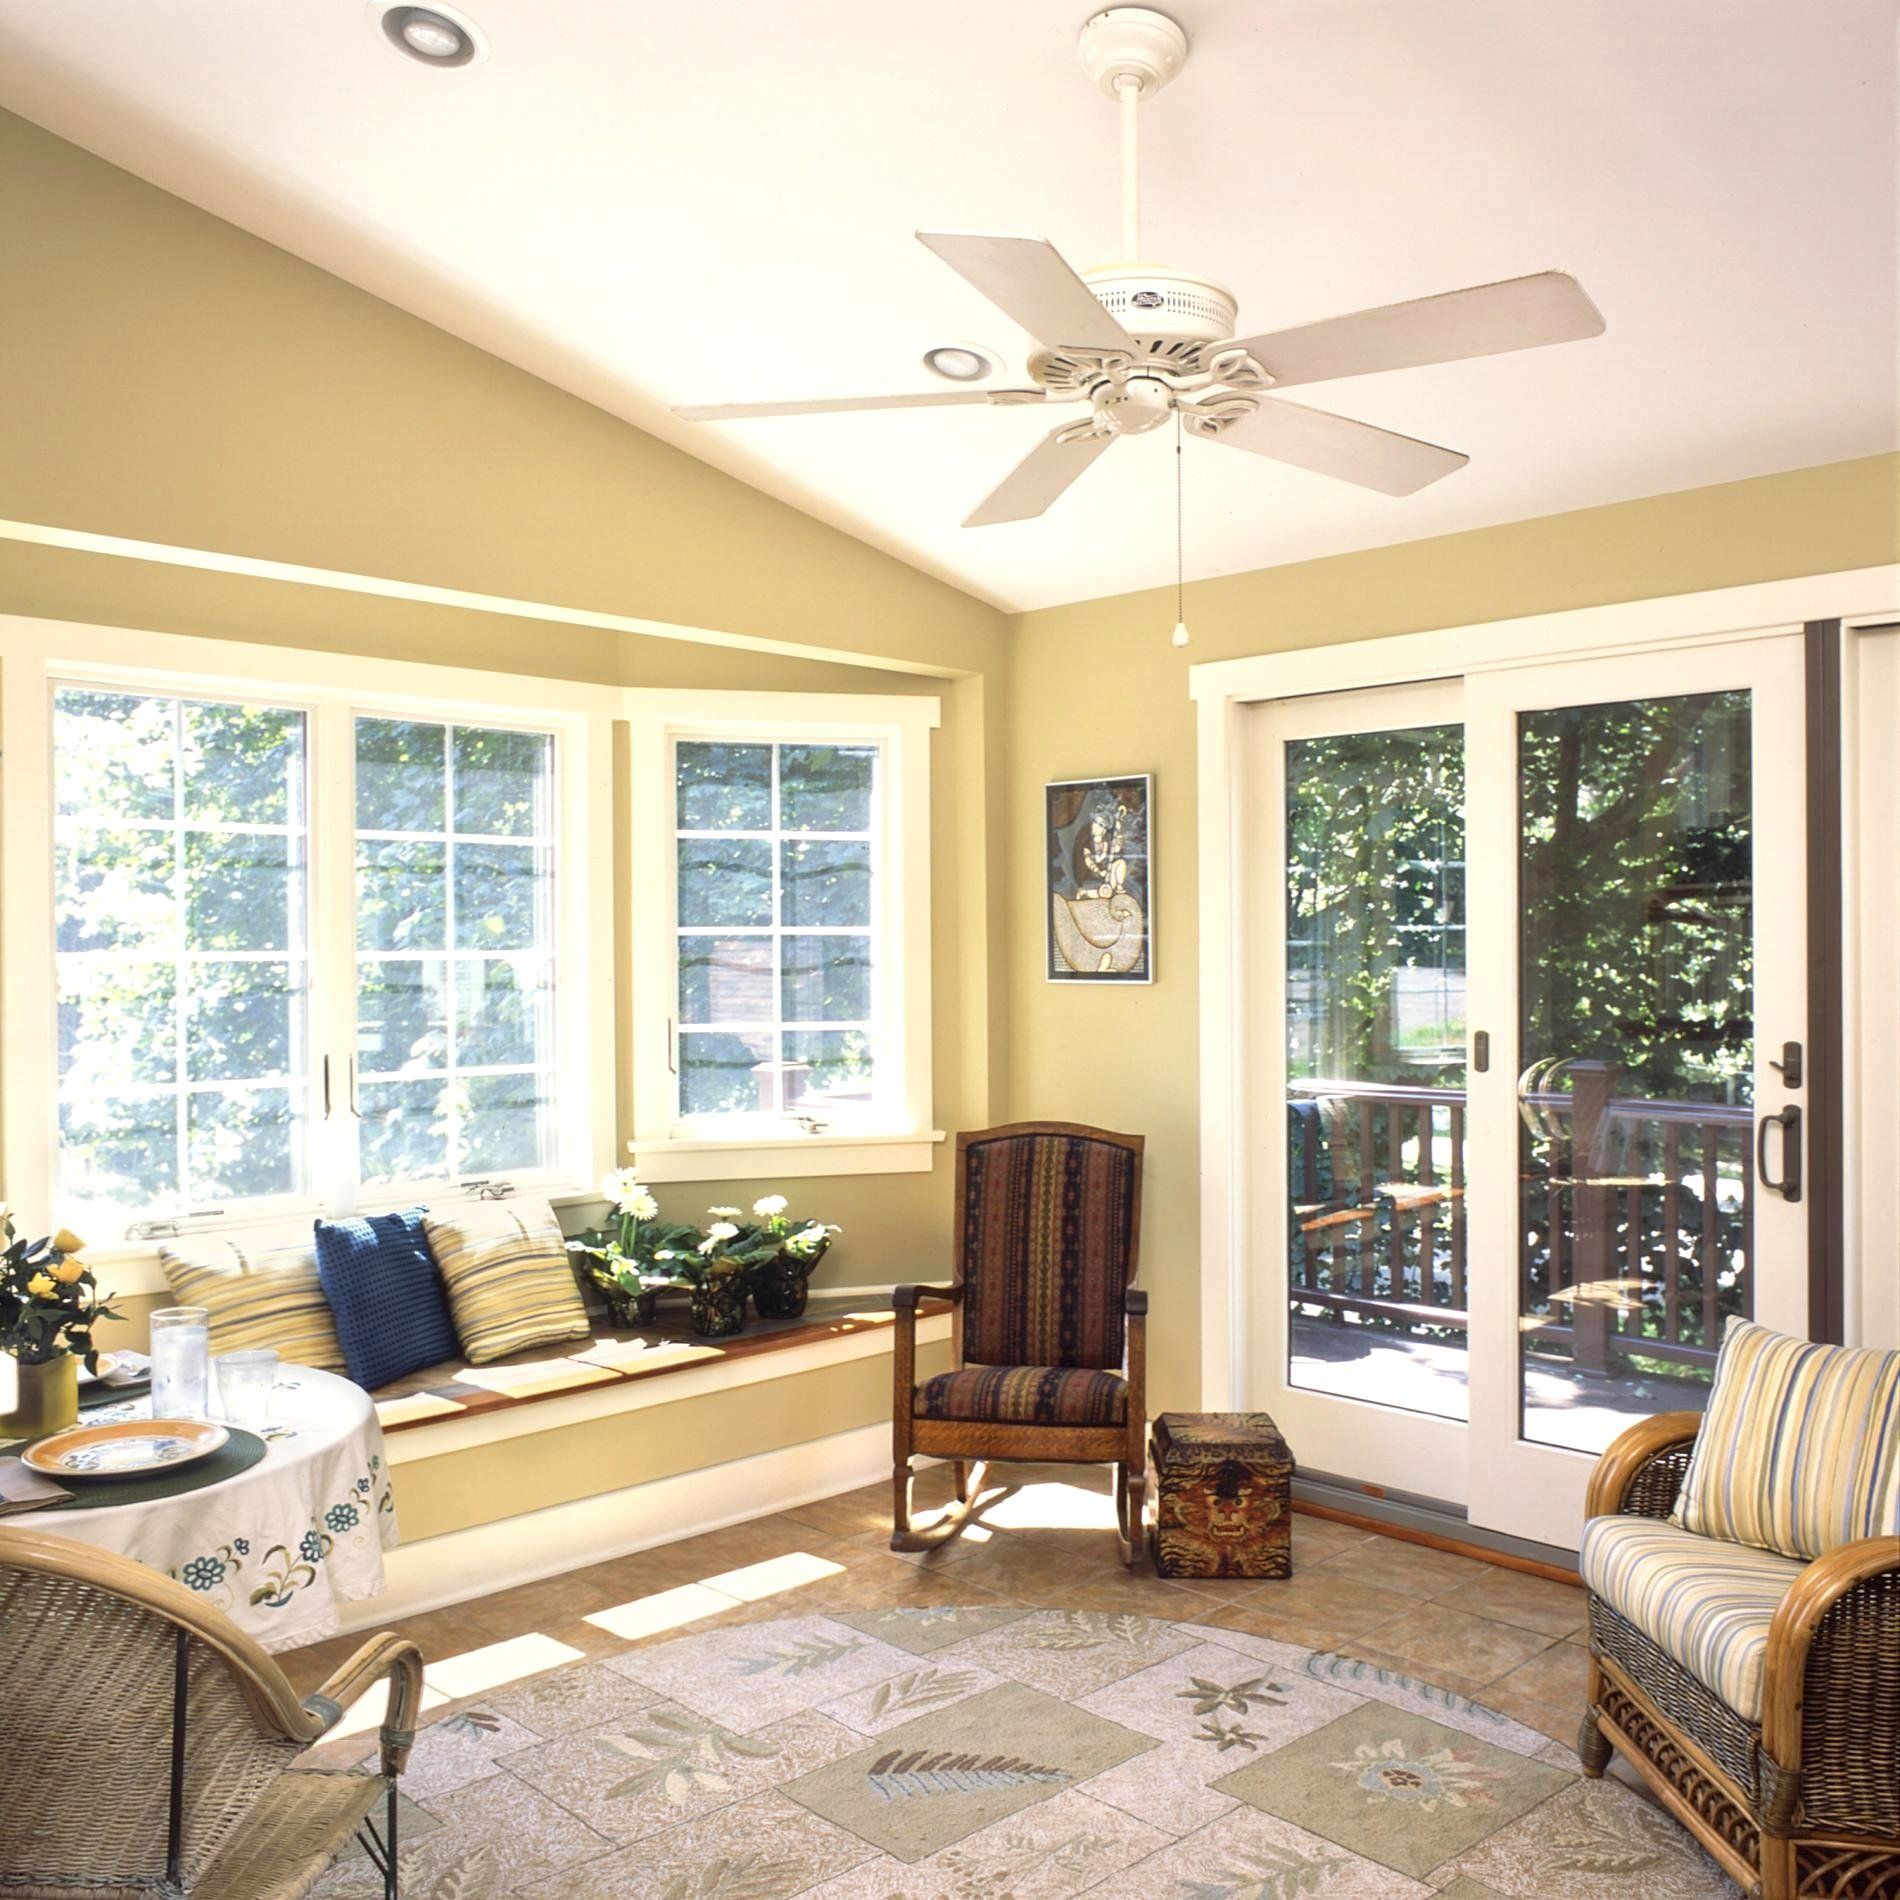 comfy sunroom interior nuance with gold wall paint color ForSunroom Interior Walls